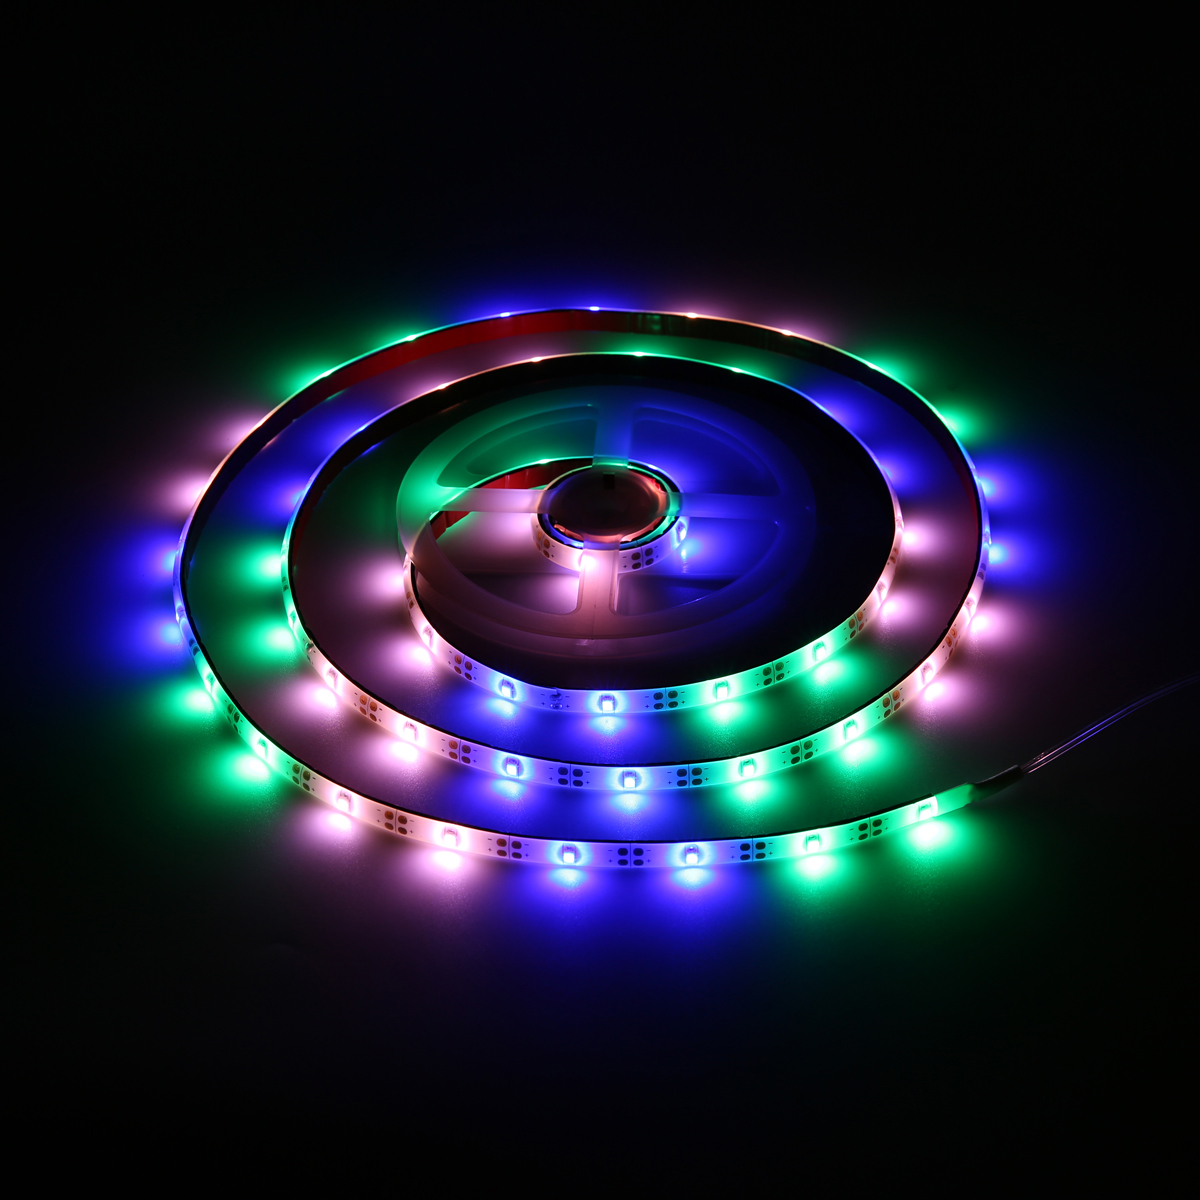 ARILUX® Battery Powered 2M SMD3528 PGB Waterproof 8 Modes LED Strip Light for Holiday Decor DC3V